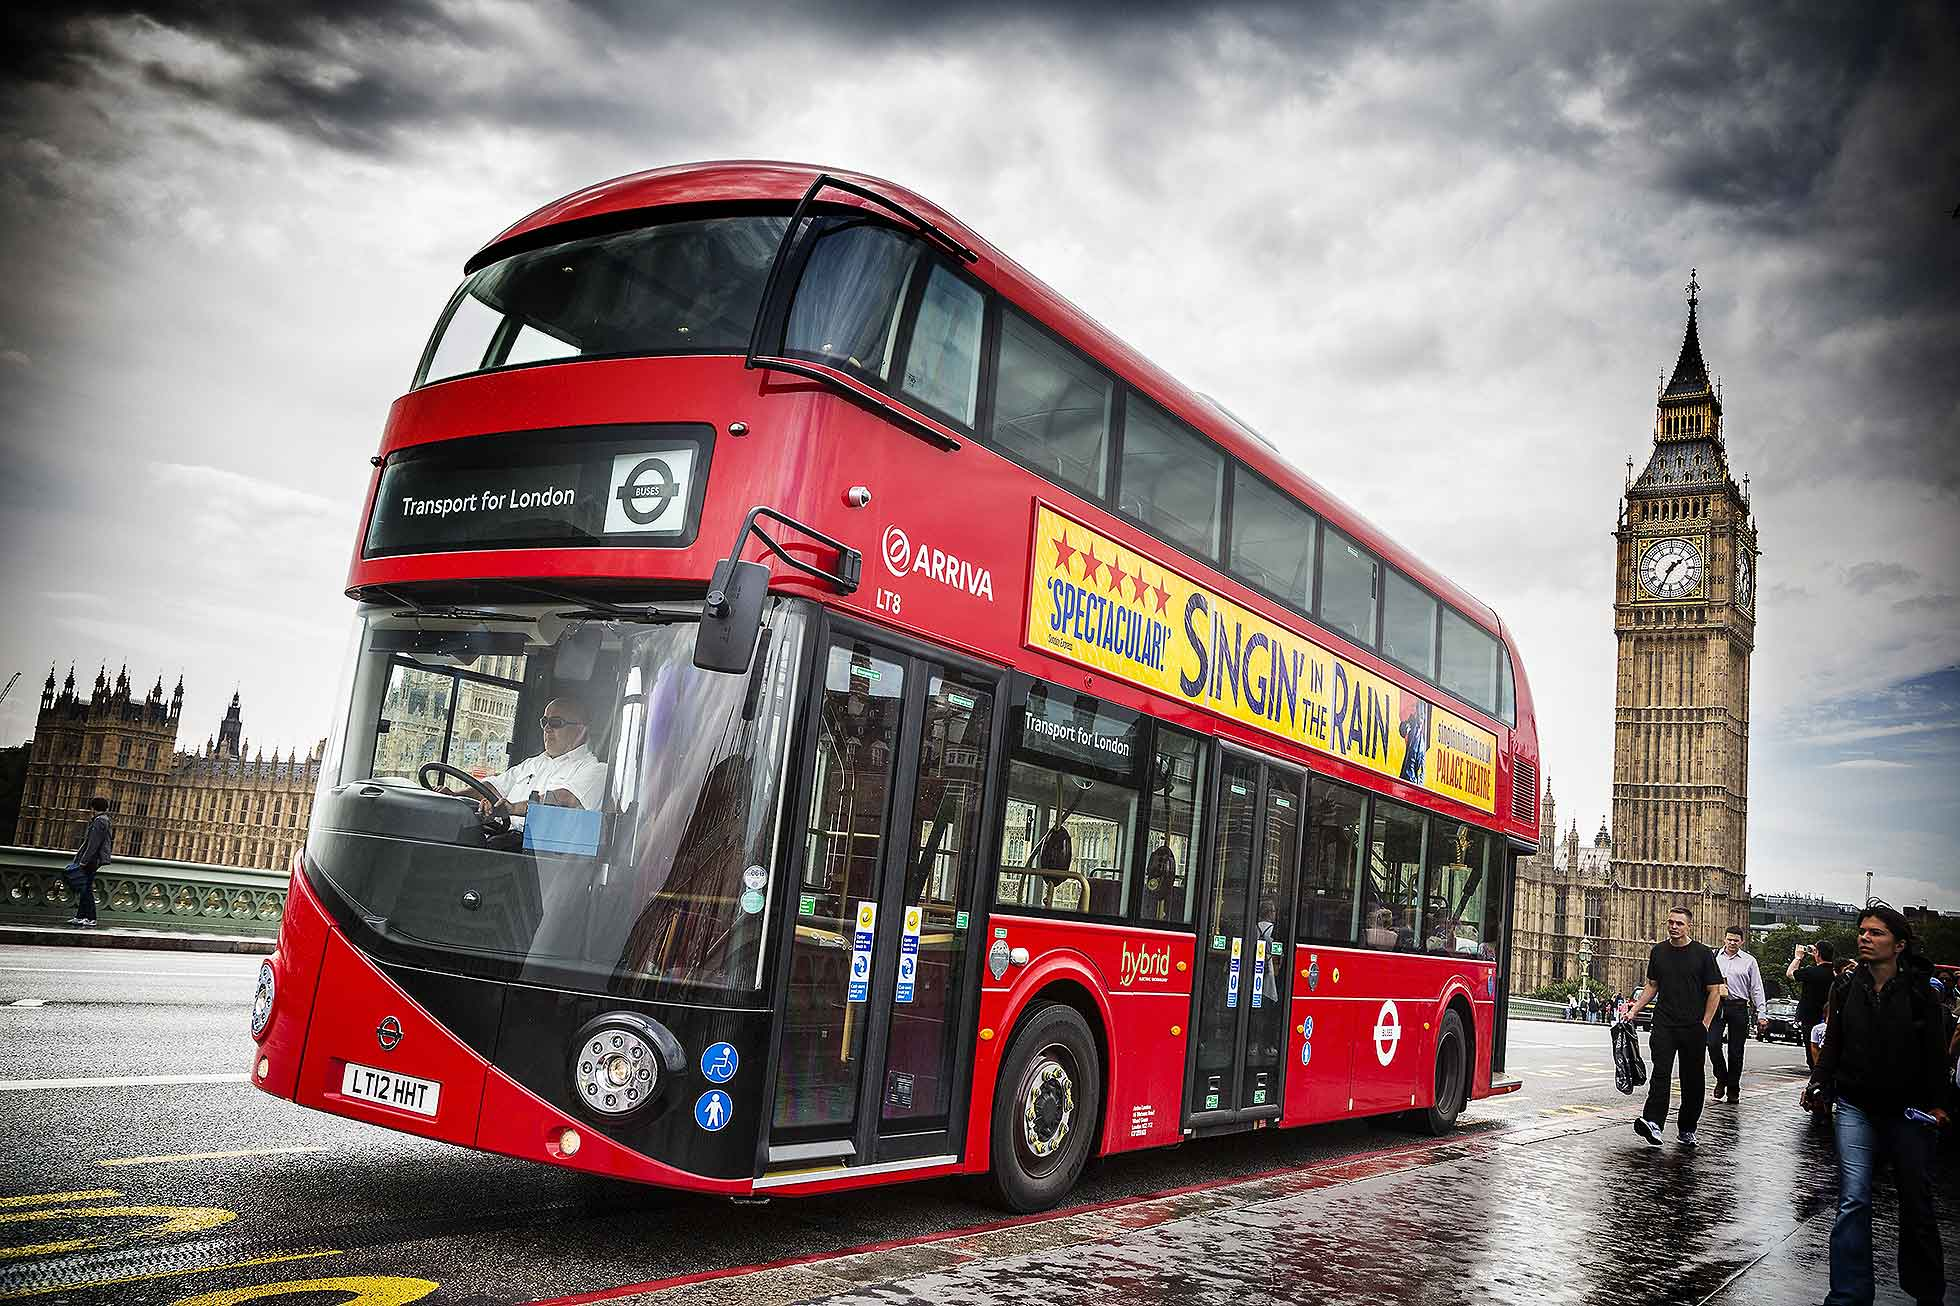 Routemaster_London_bus